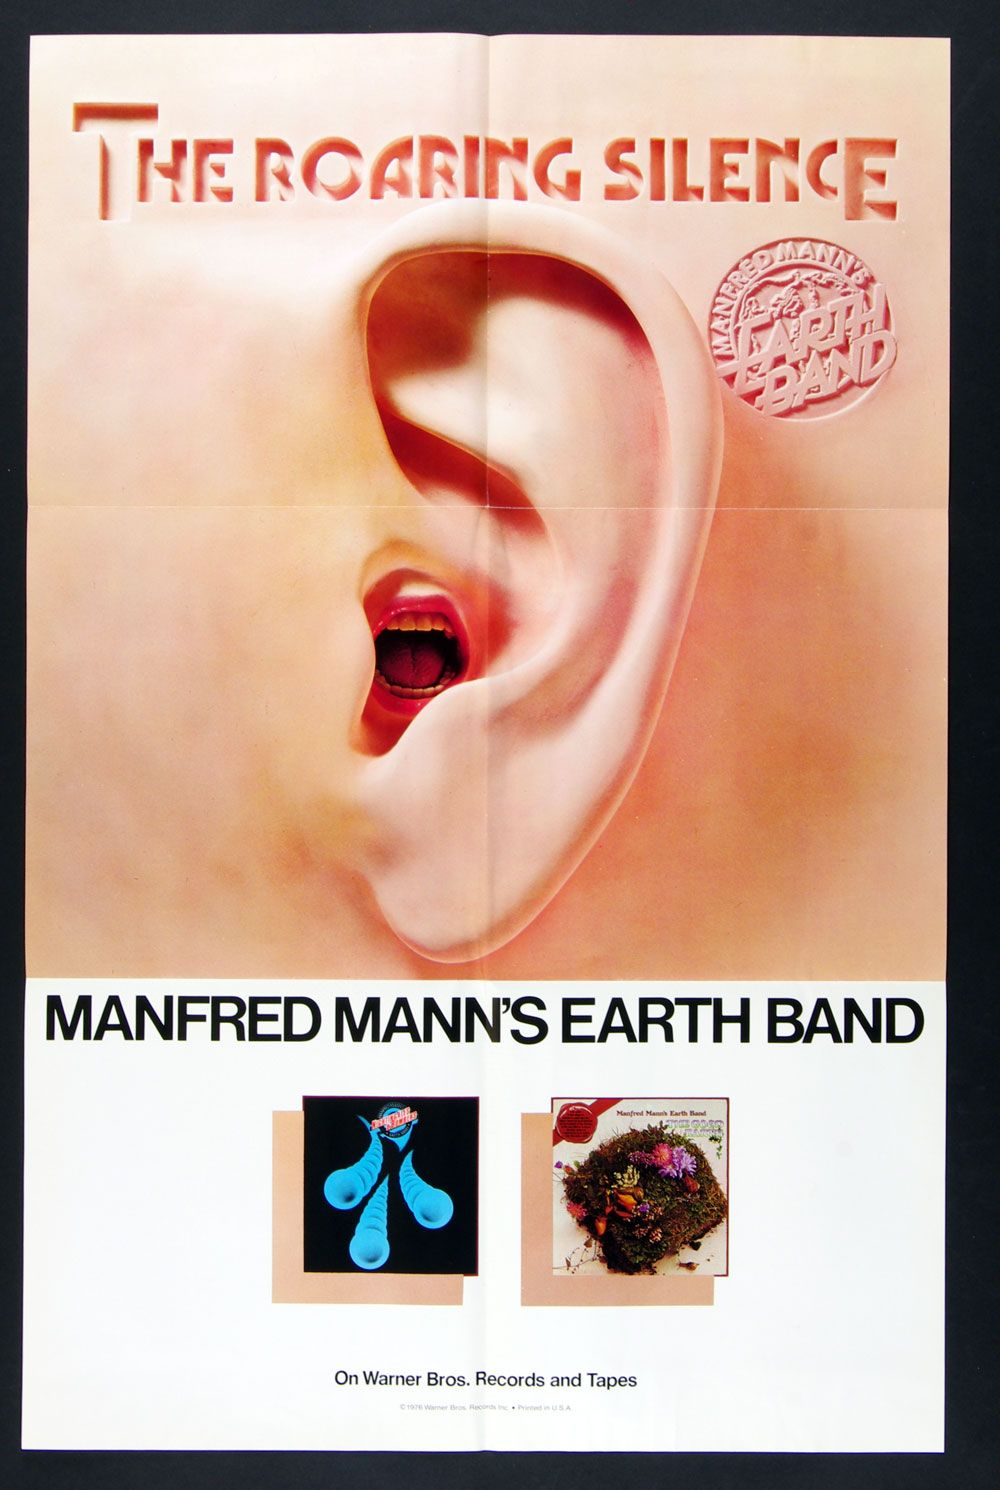 Manfred Mann's Earth Band The Roaring Silence 1976 New Album Vintage Poster 23 x 35